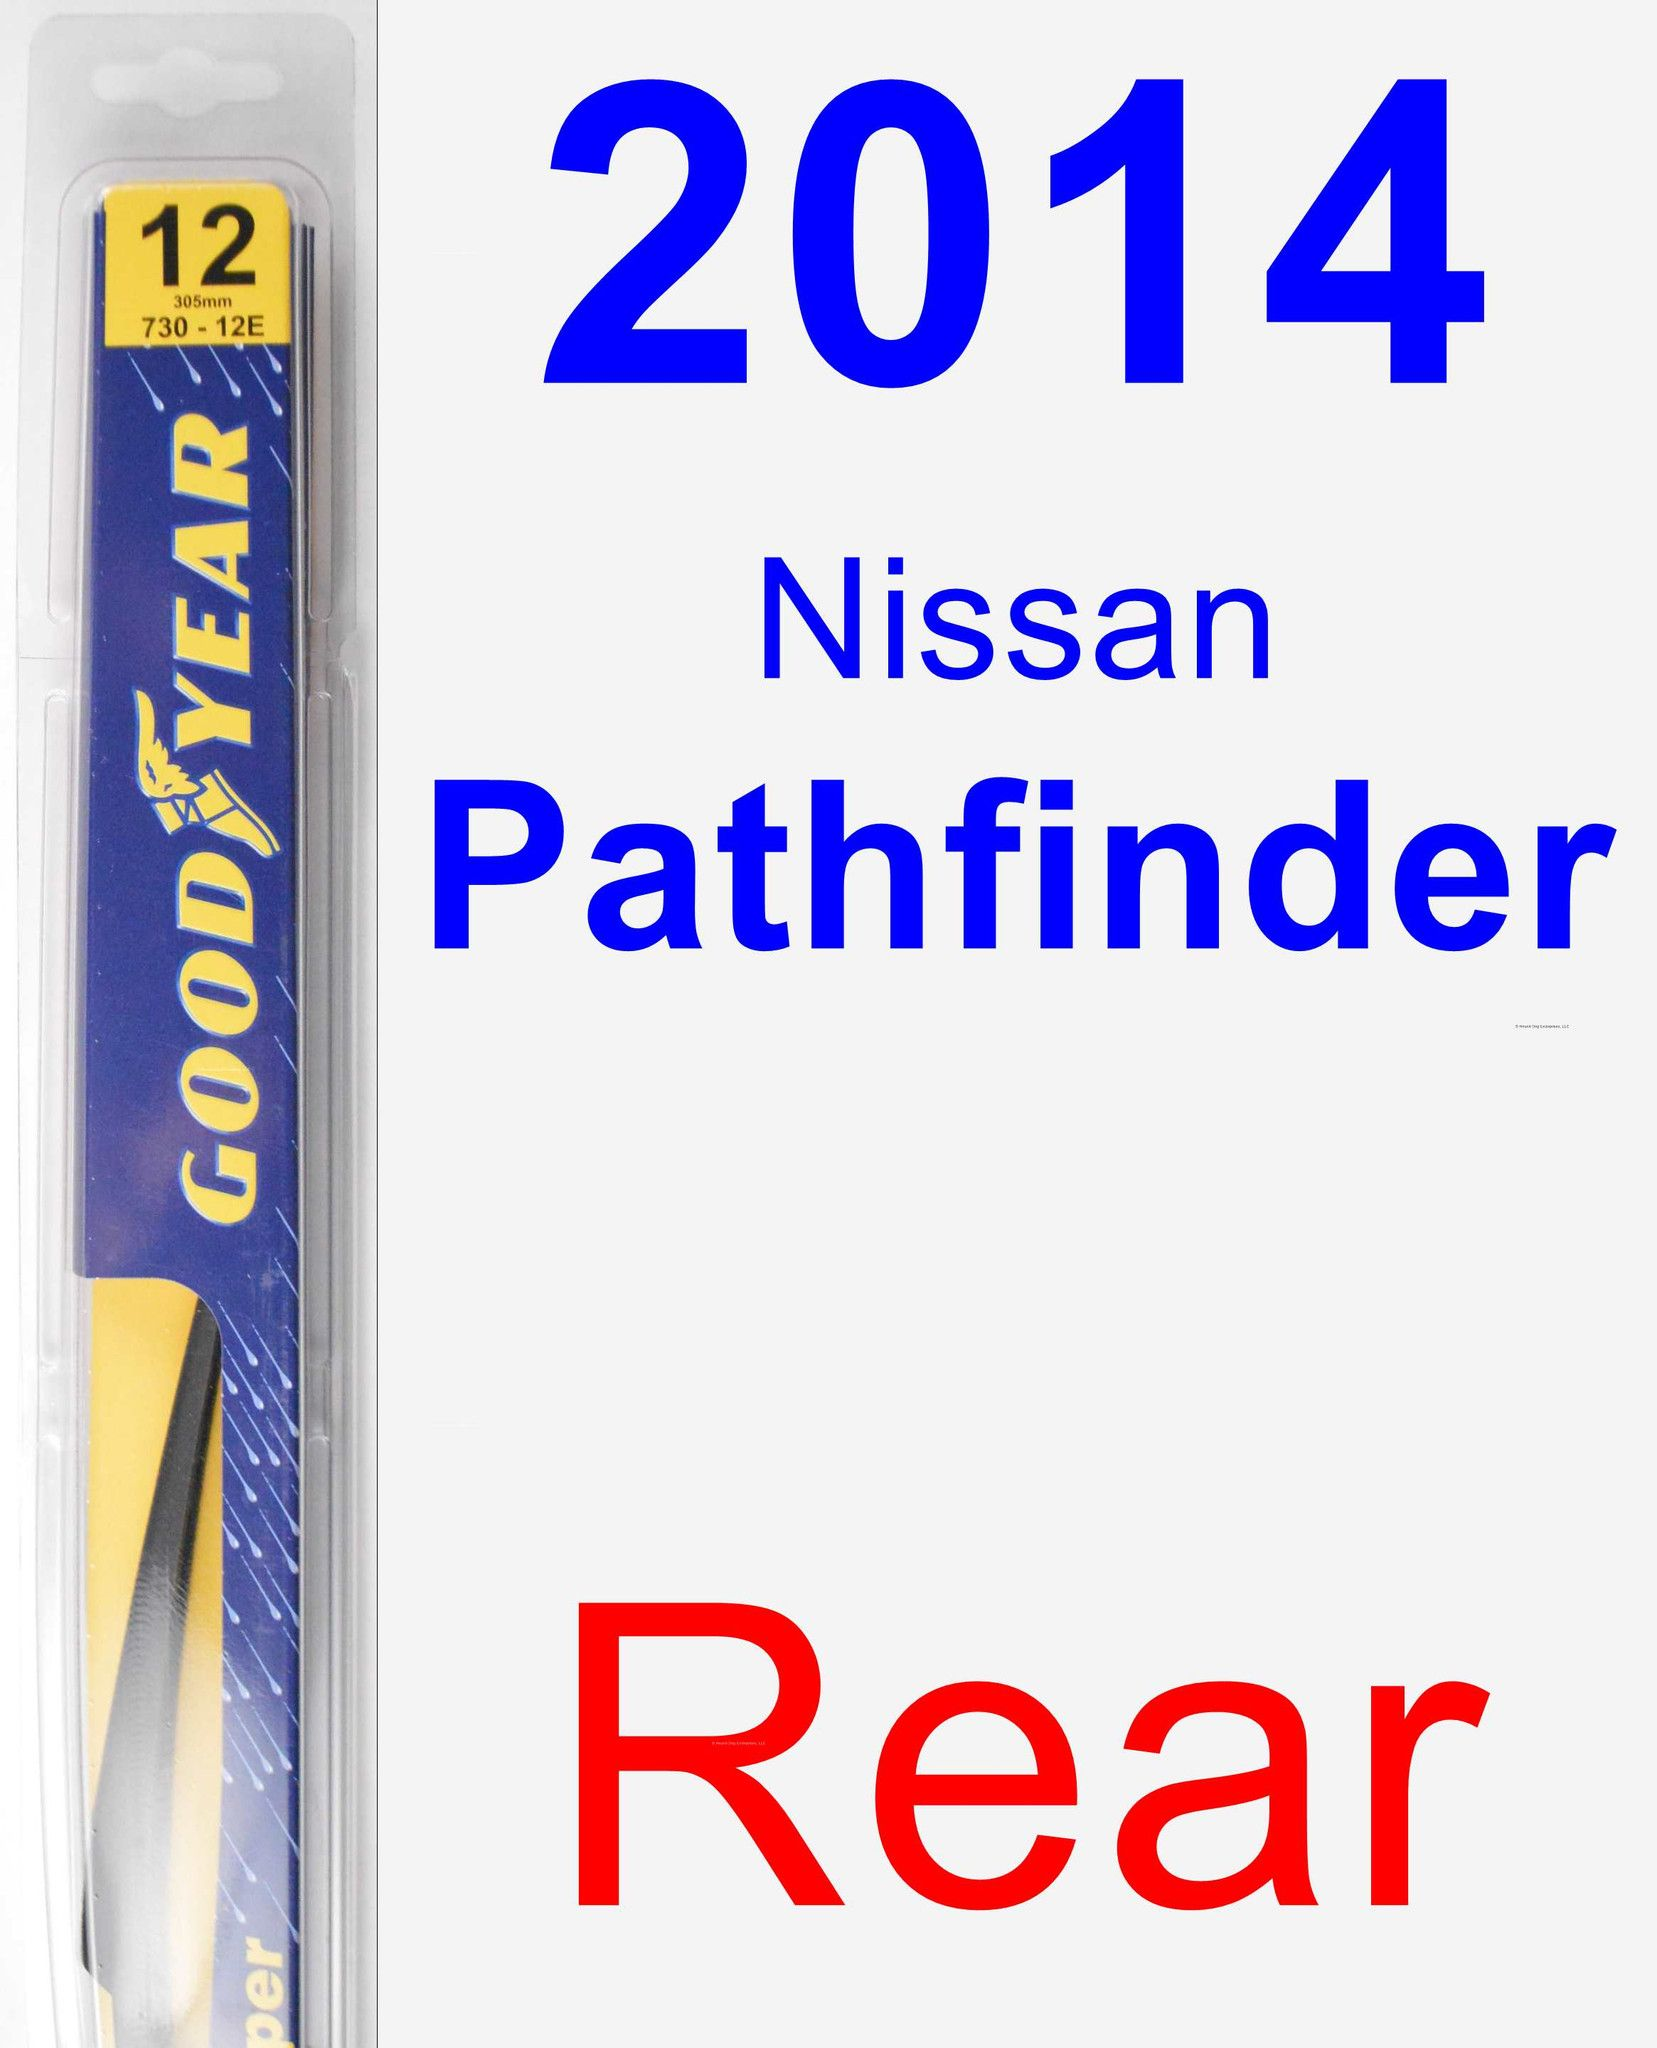 Rear Wiper Blade for 2014 Nissan Pathfinder - Rear